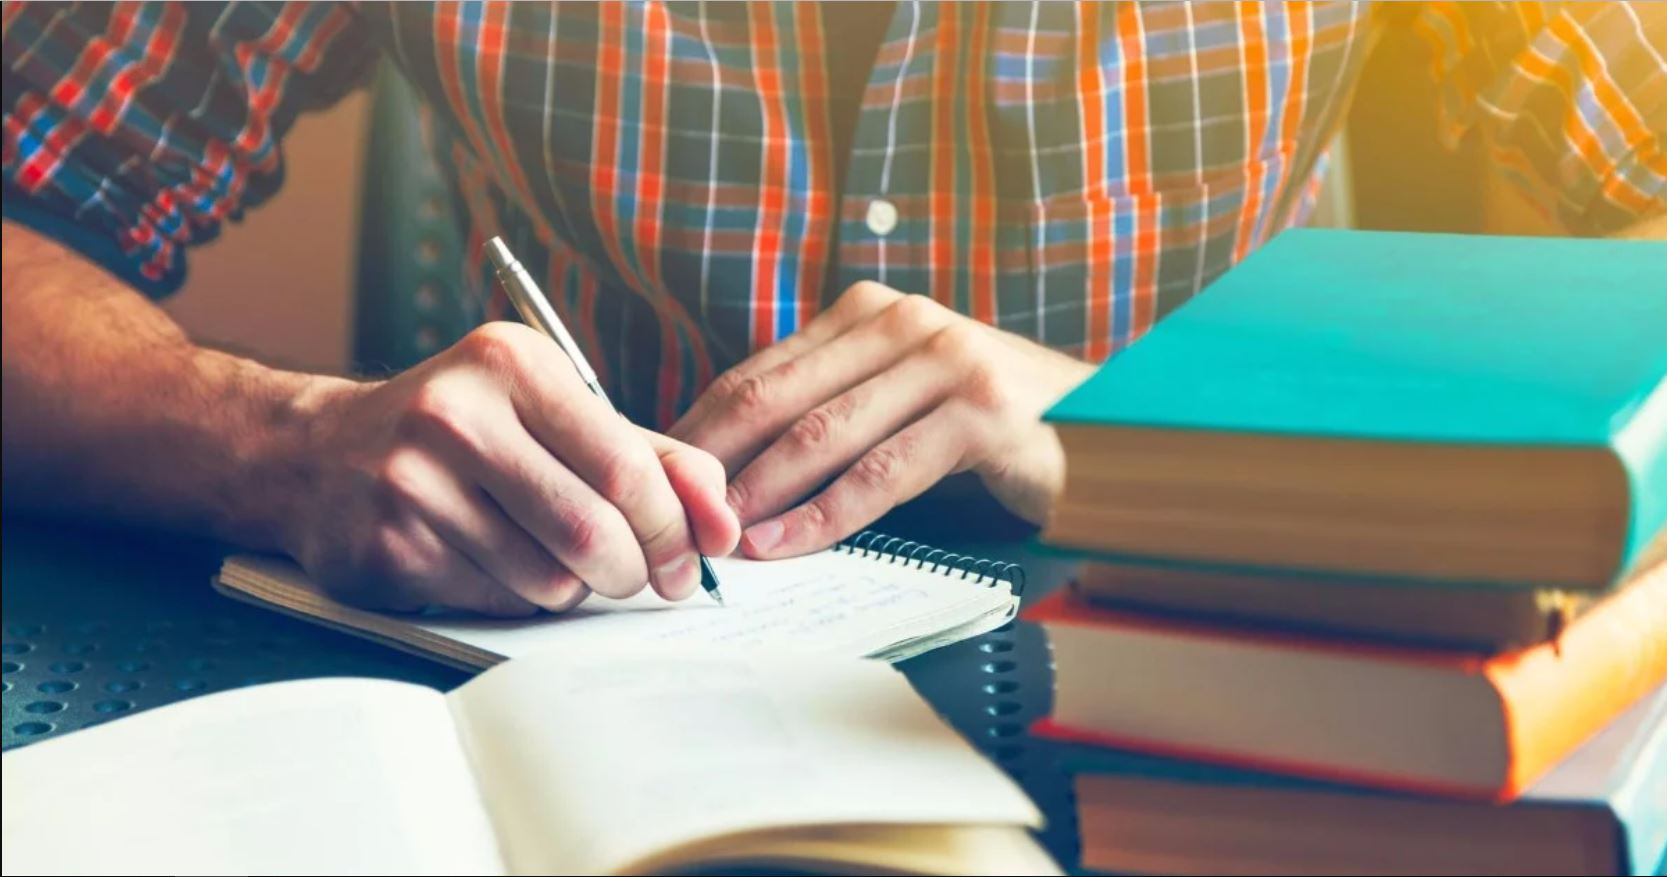 The Pro of Hiring an Essay Writer